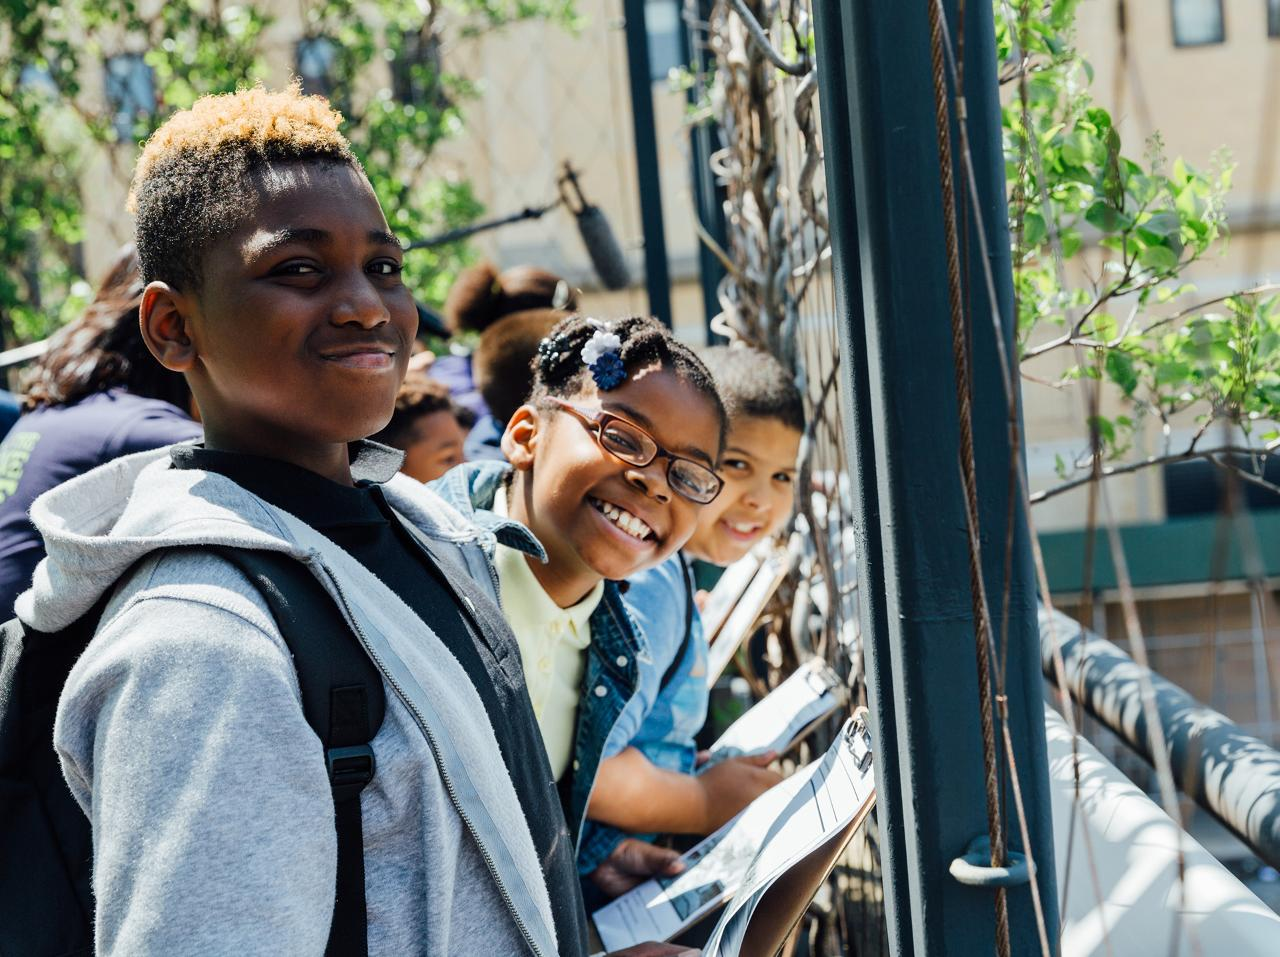 PARK IN THE SKY – DESIGNING THE HIGH LINE